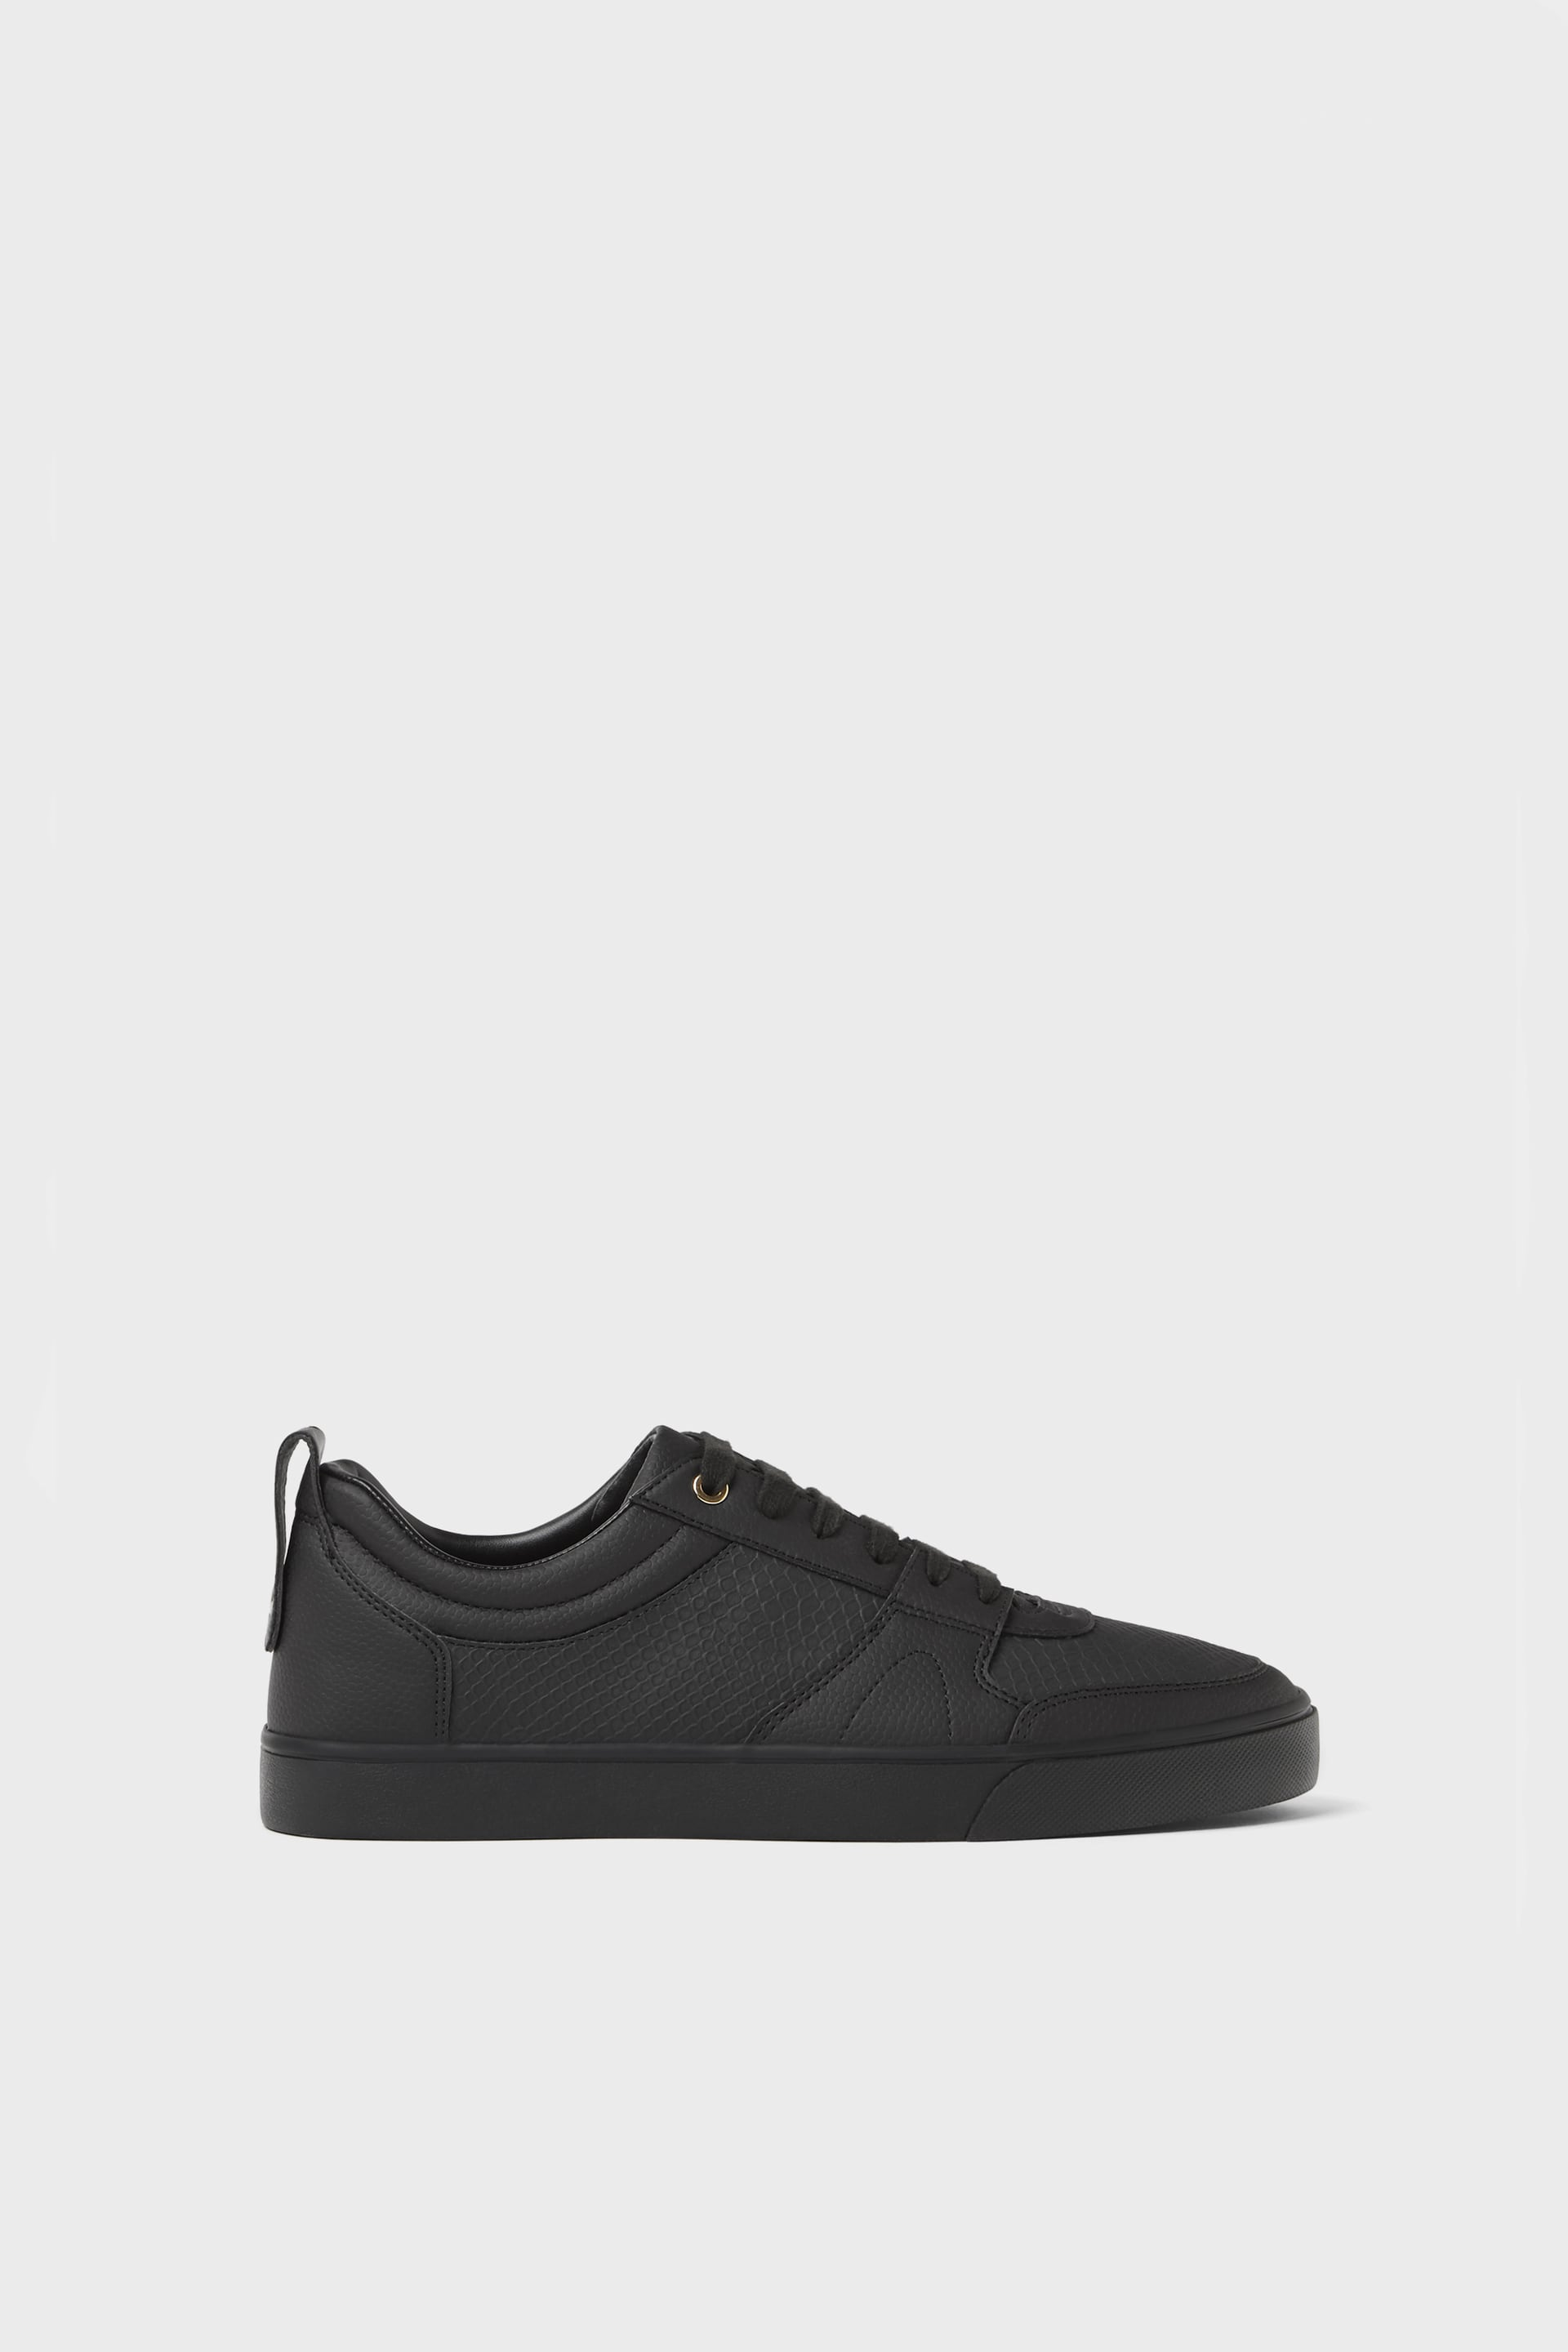 EMBOSSED BLACK PLIMSOLLS